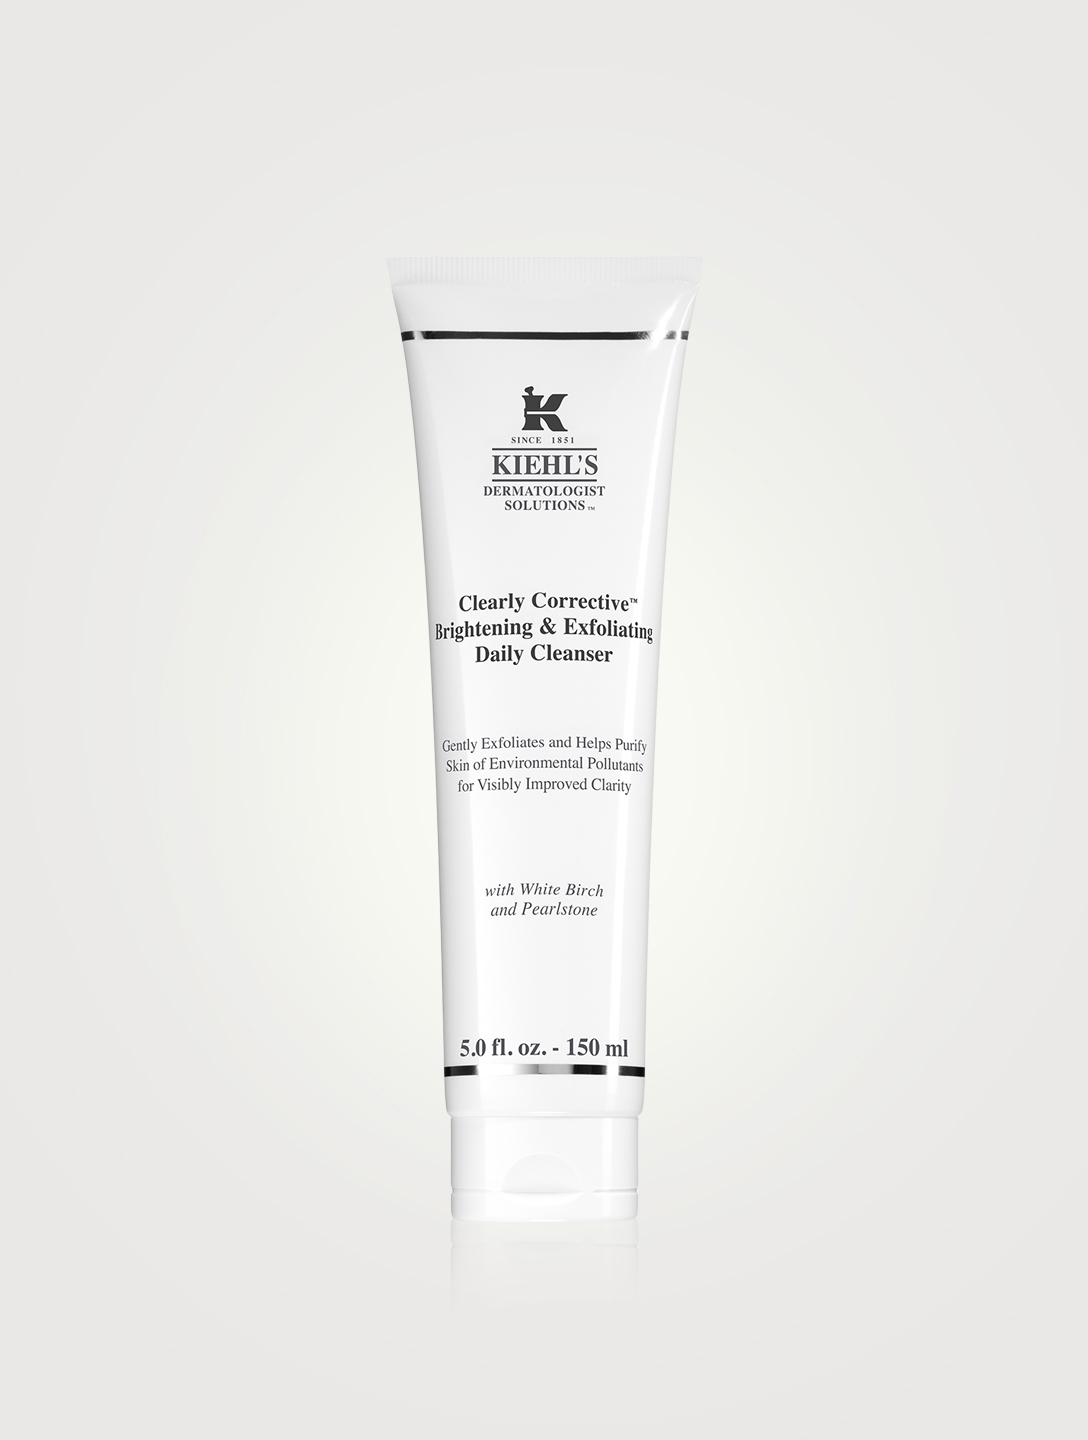 KIEHL'S Clearly Corrective™ Brightening & Exfoliating Daily Cleanser Beauty